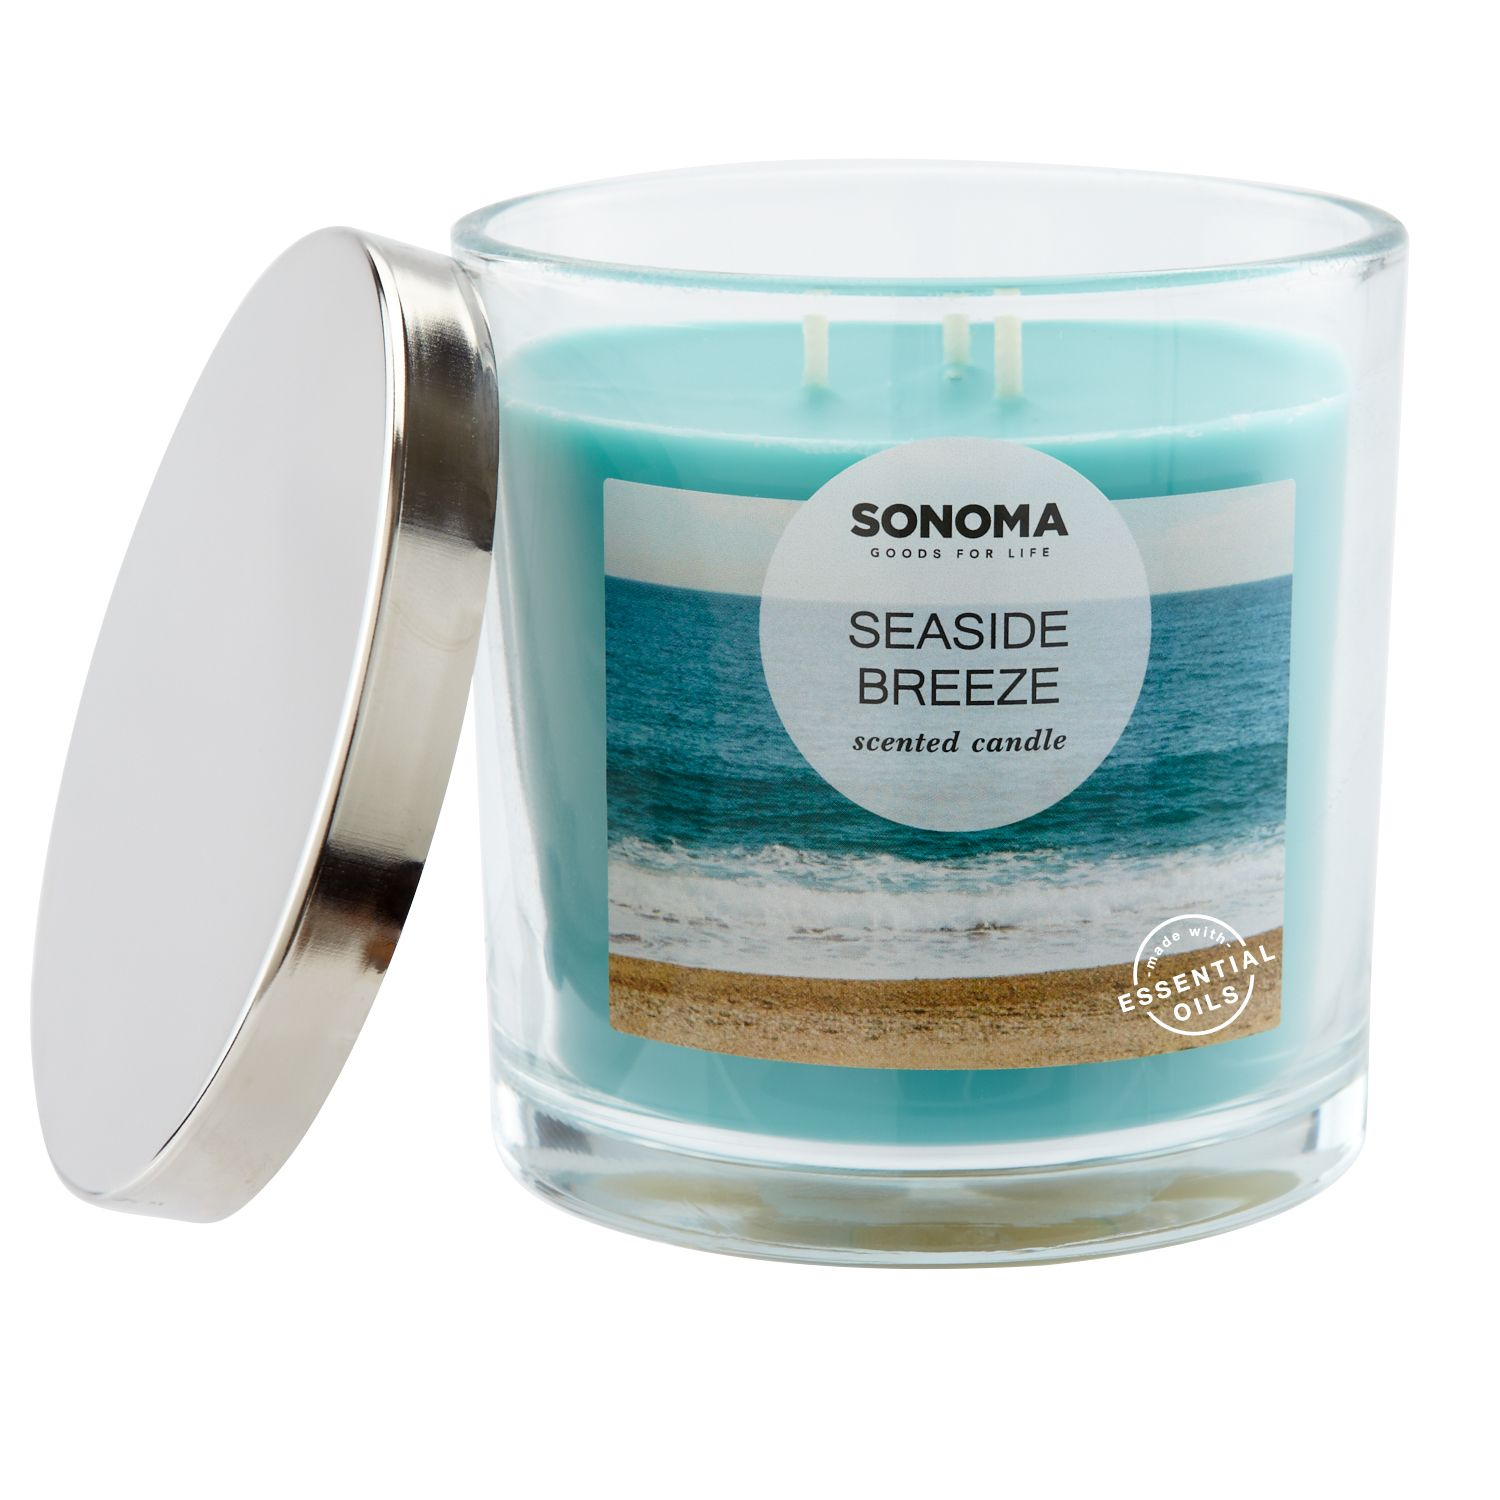 Candles & Scented Candles | Kohl's